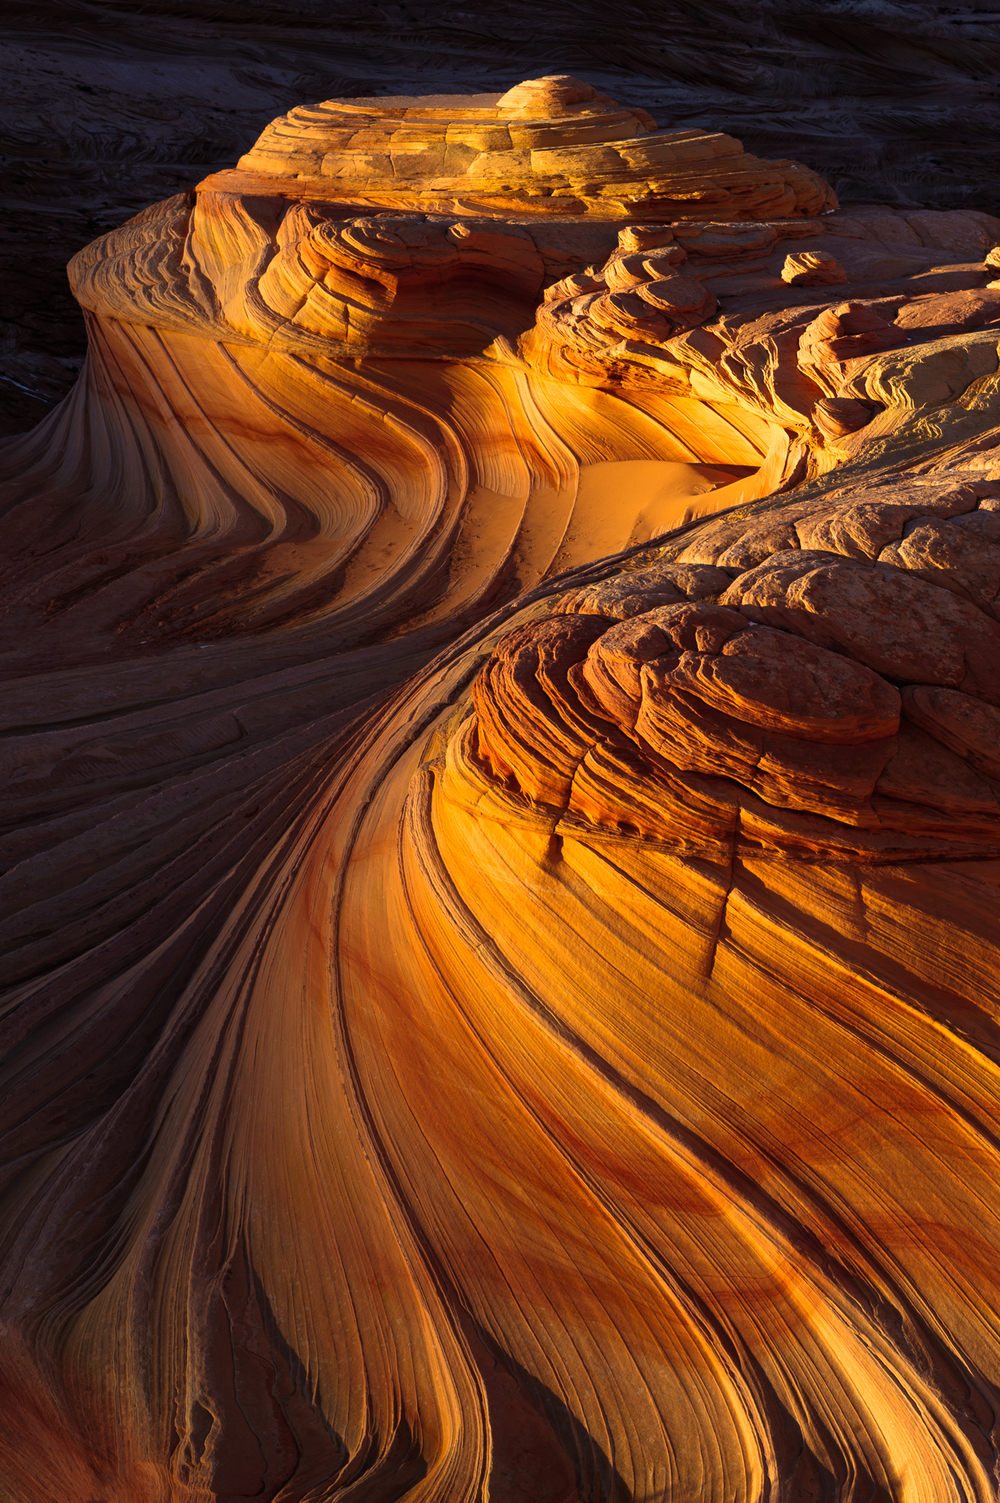 Twists of Time, Paria/Vermillion Cliffs Wilderness, Arizona